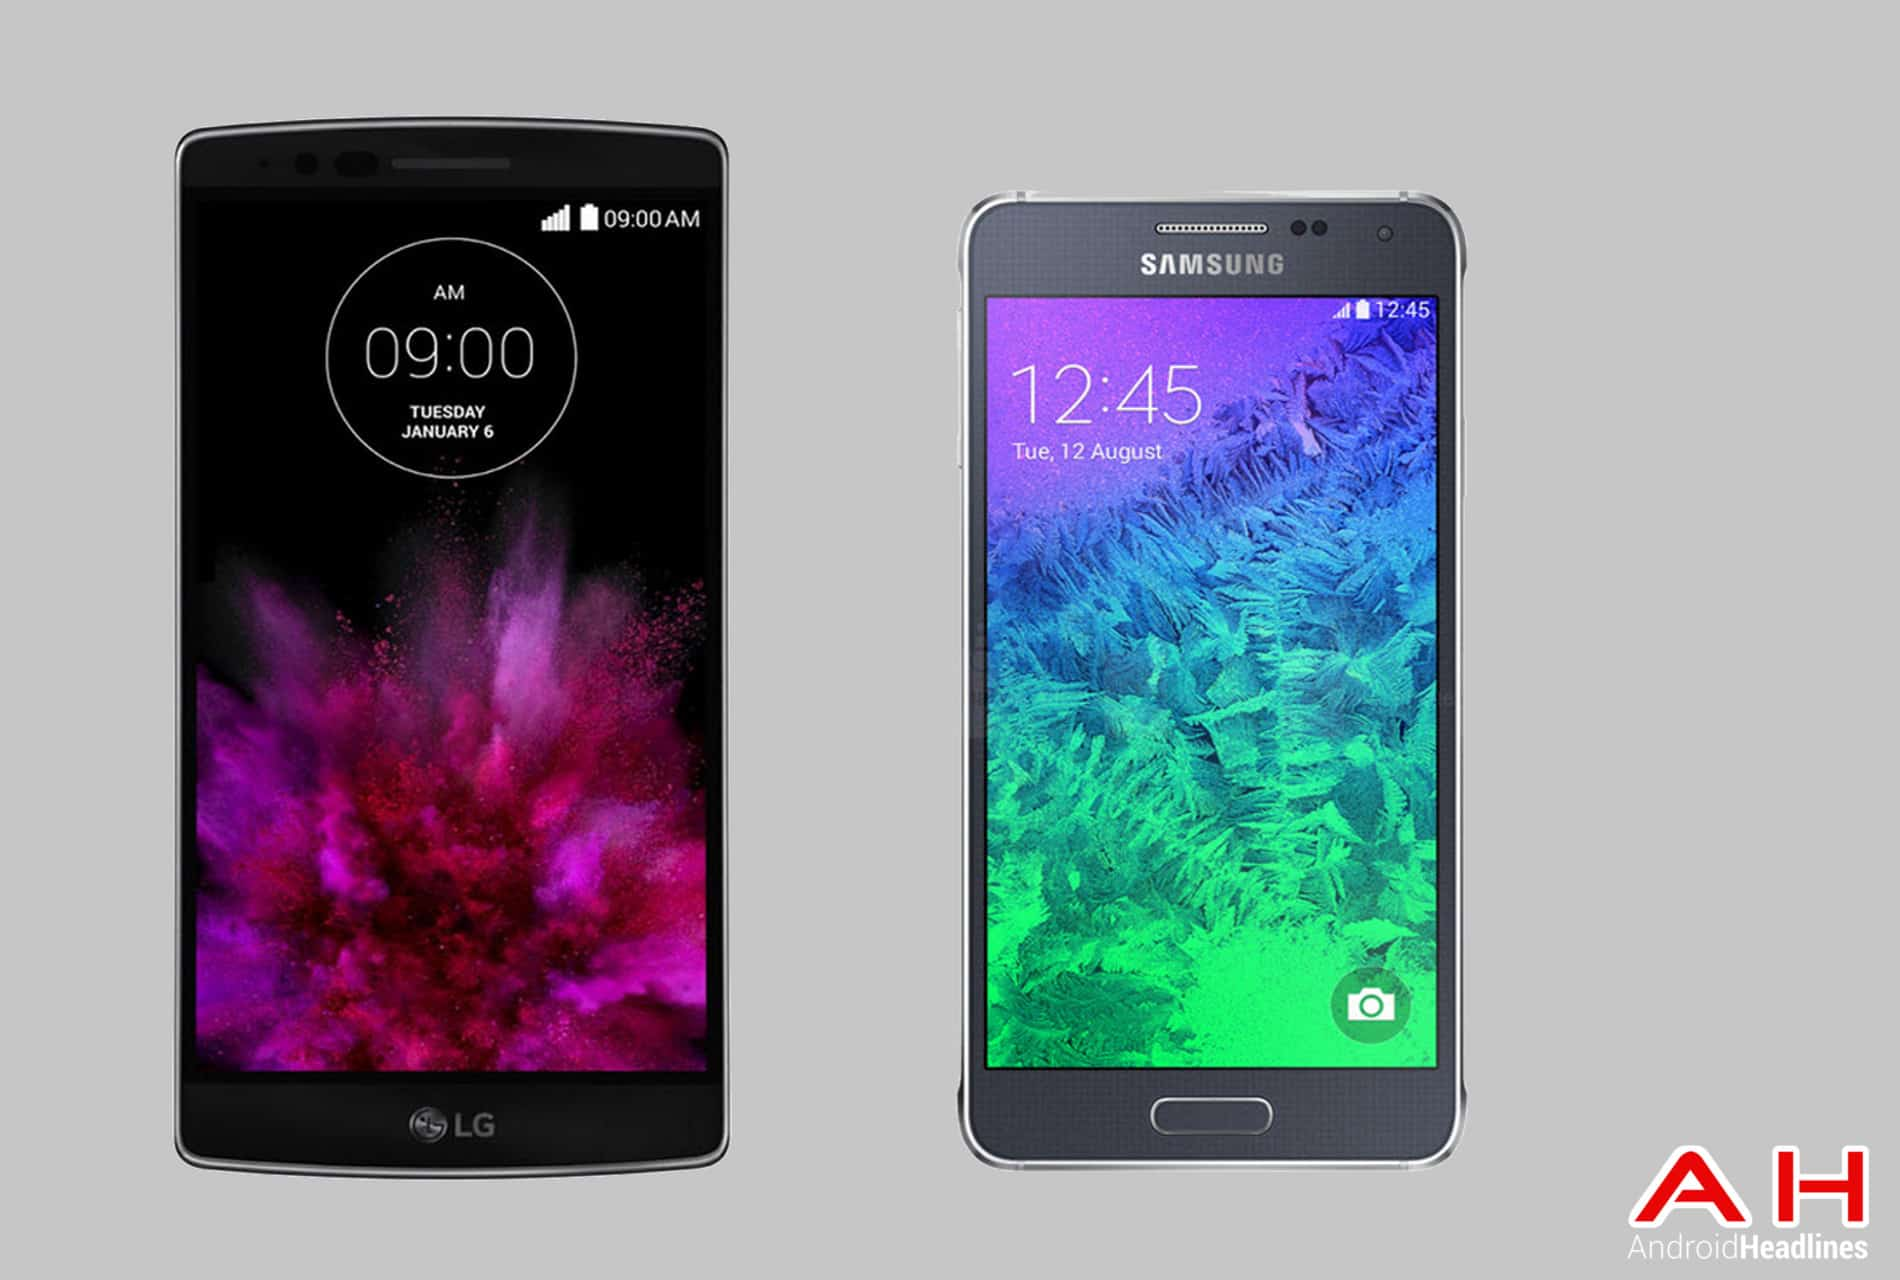 LG G Flex 2 vs Galaxy Alpha cam AH